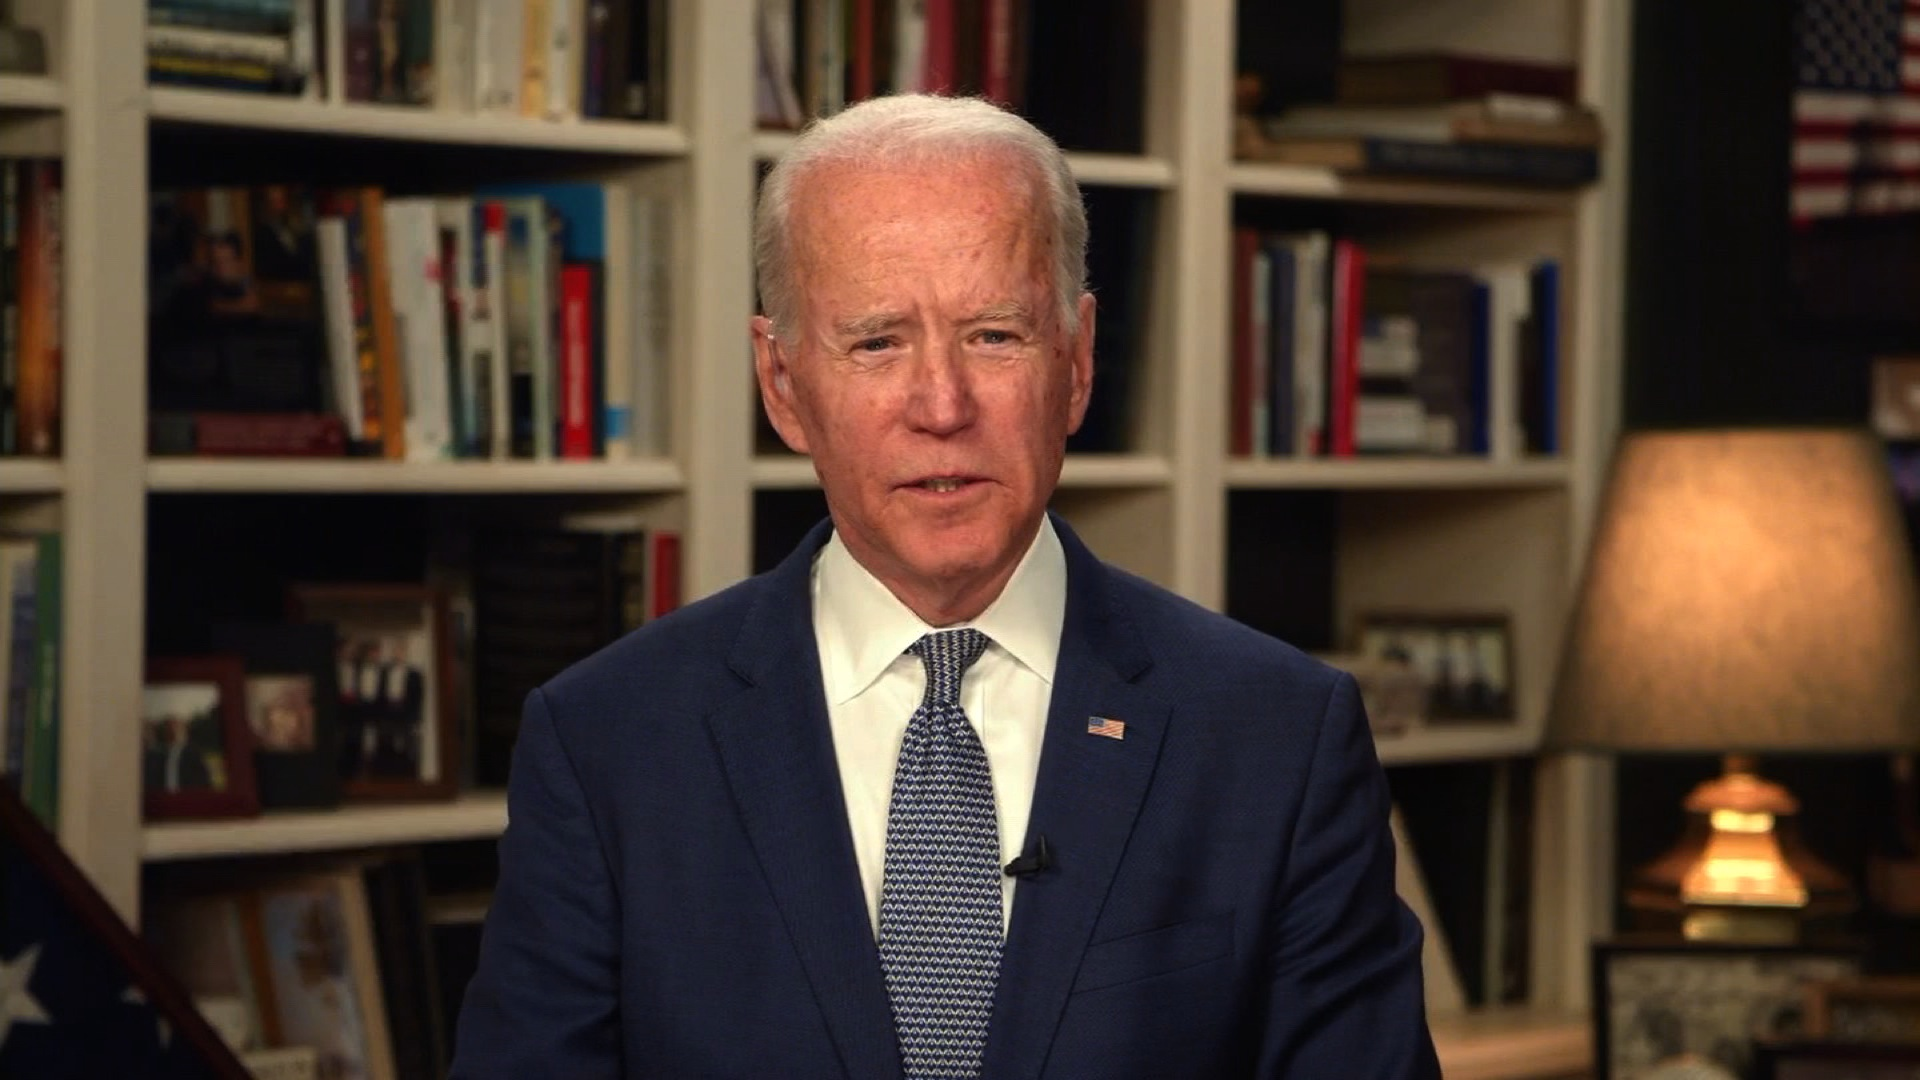 Biden makes pitch as an empathetic leader in new digital ad